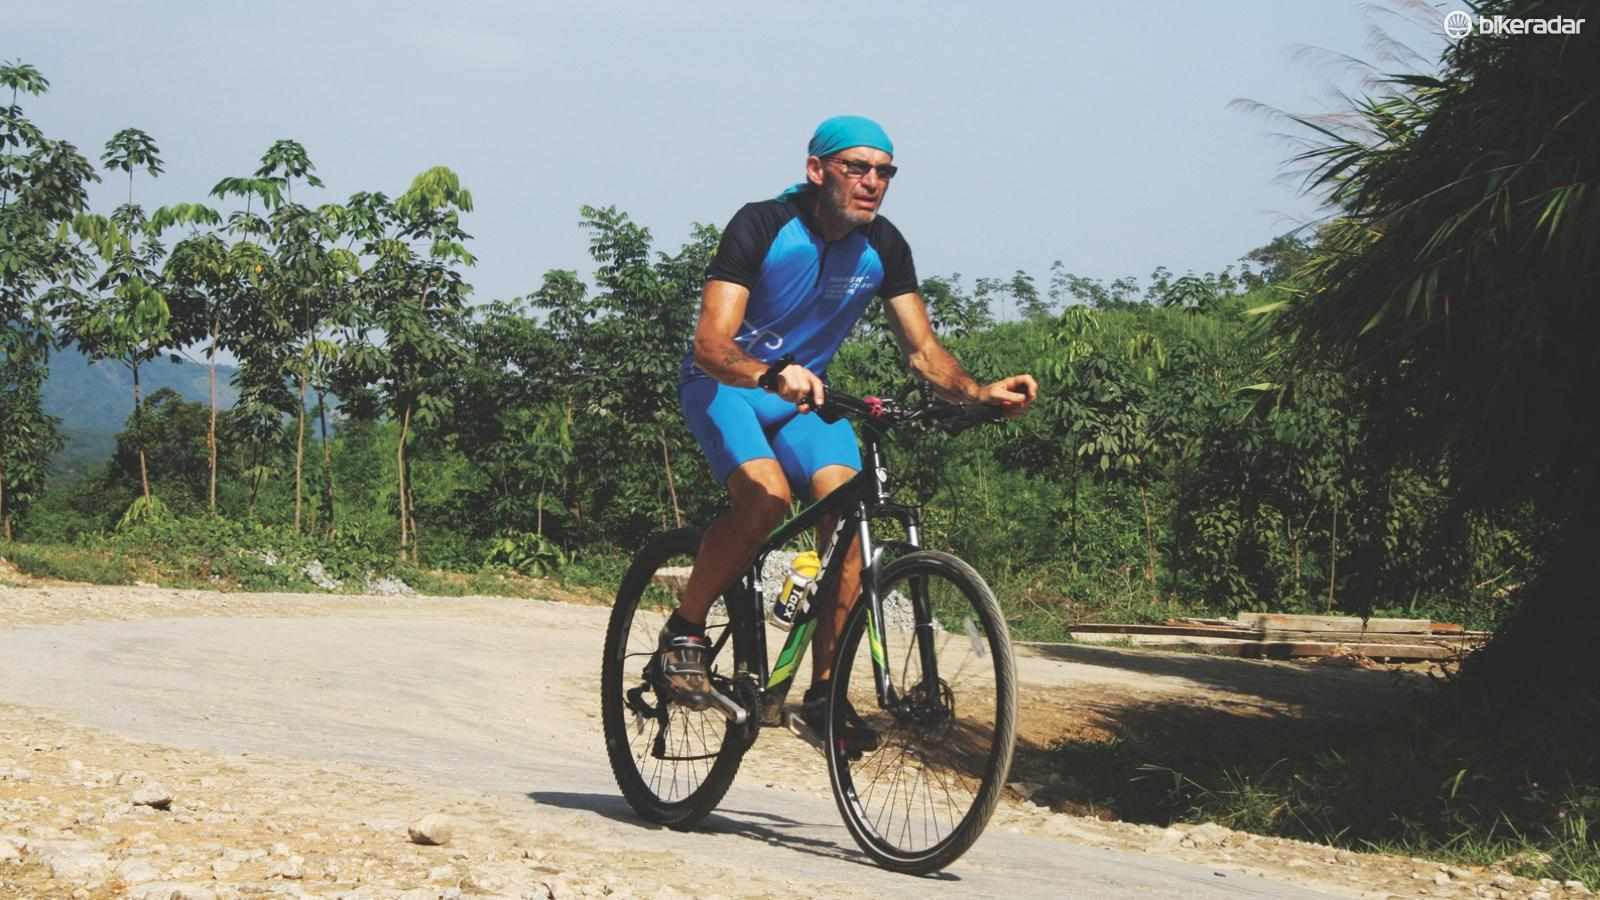 John is raising money for charity and has his sights set on a ride through China